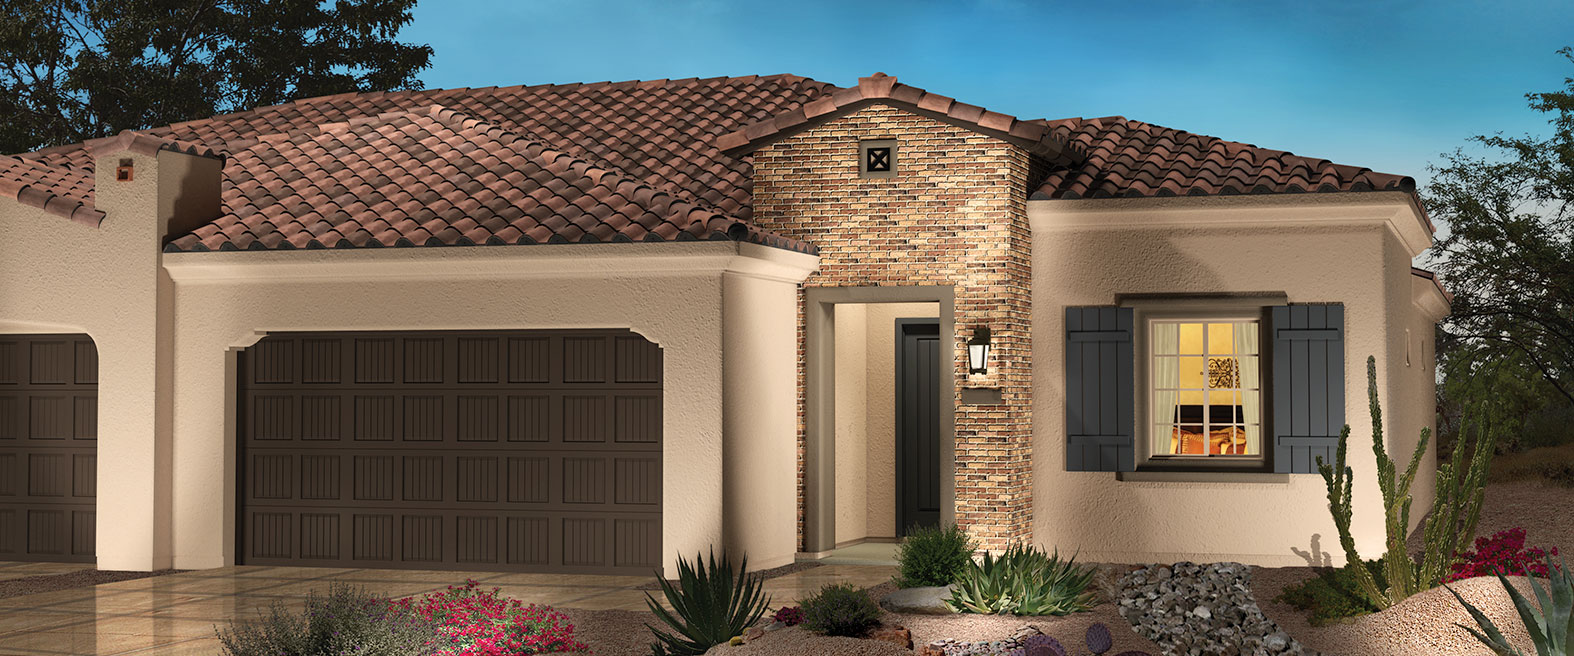 PEBBLE CREEK - COURTYARD VILLA SERIES HOMES